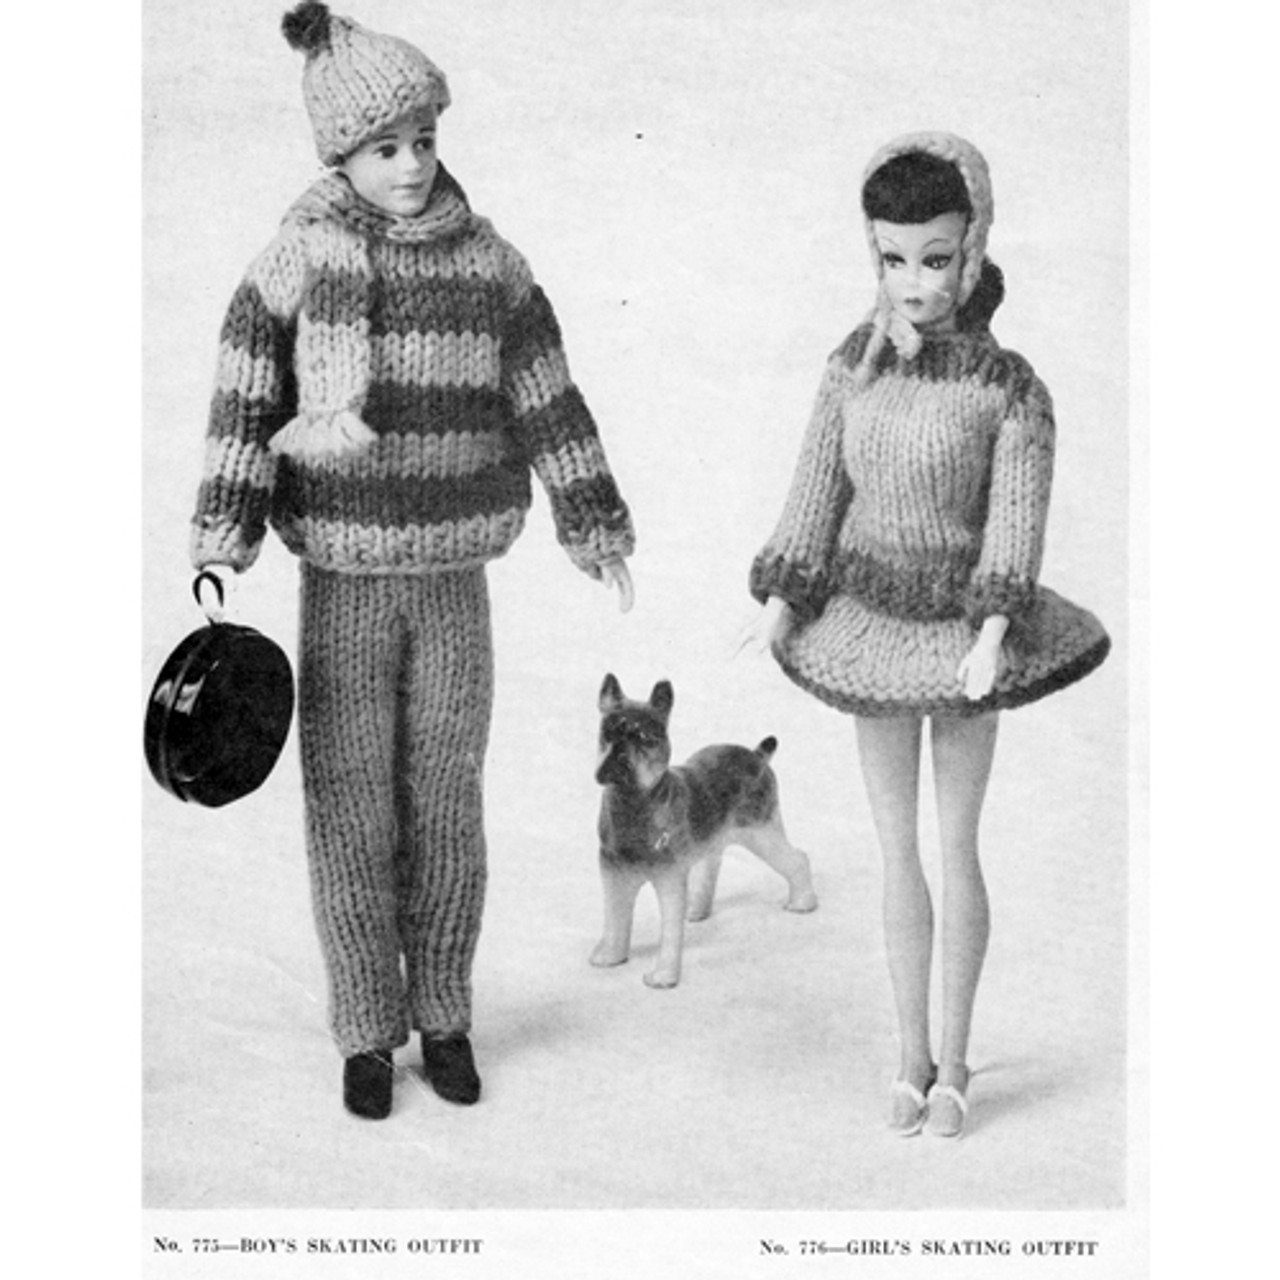 Ken Barbie Skating Outfits Knitting Pattern